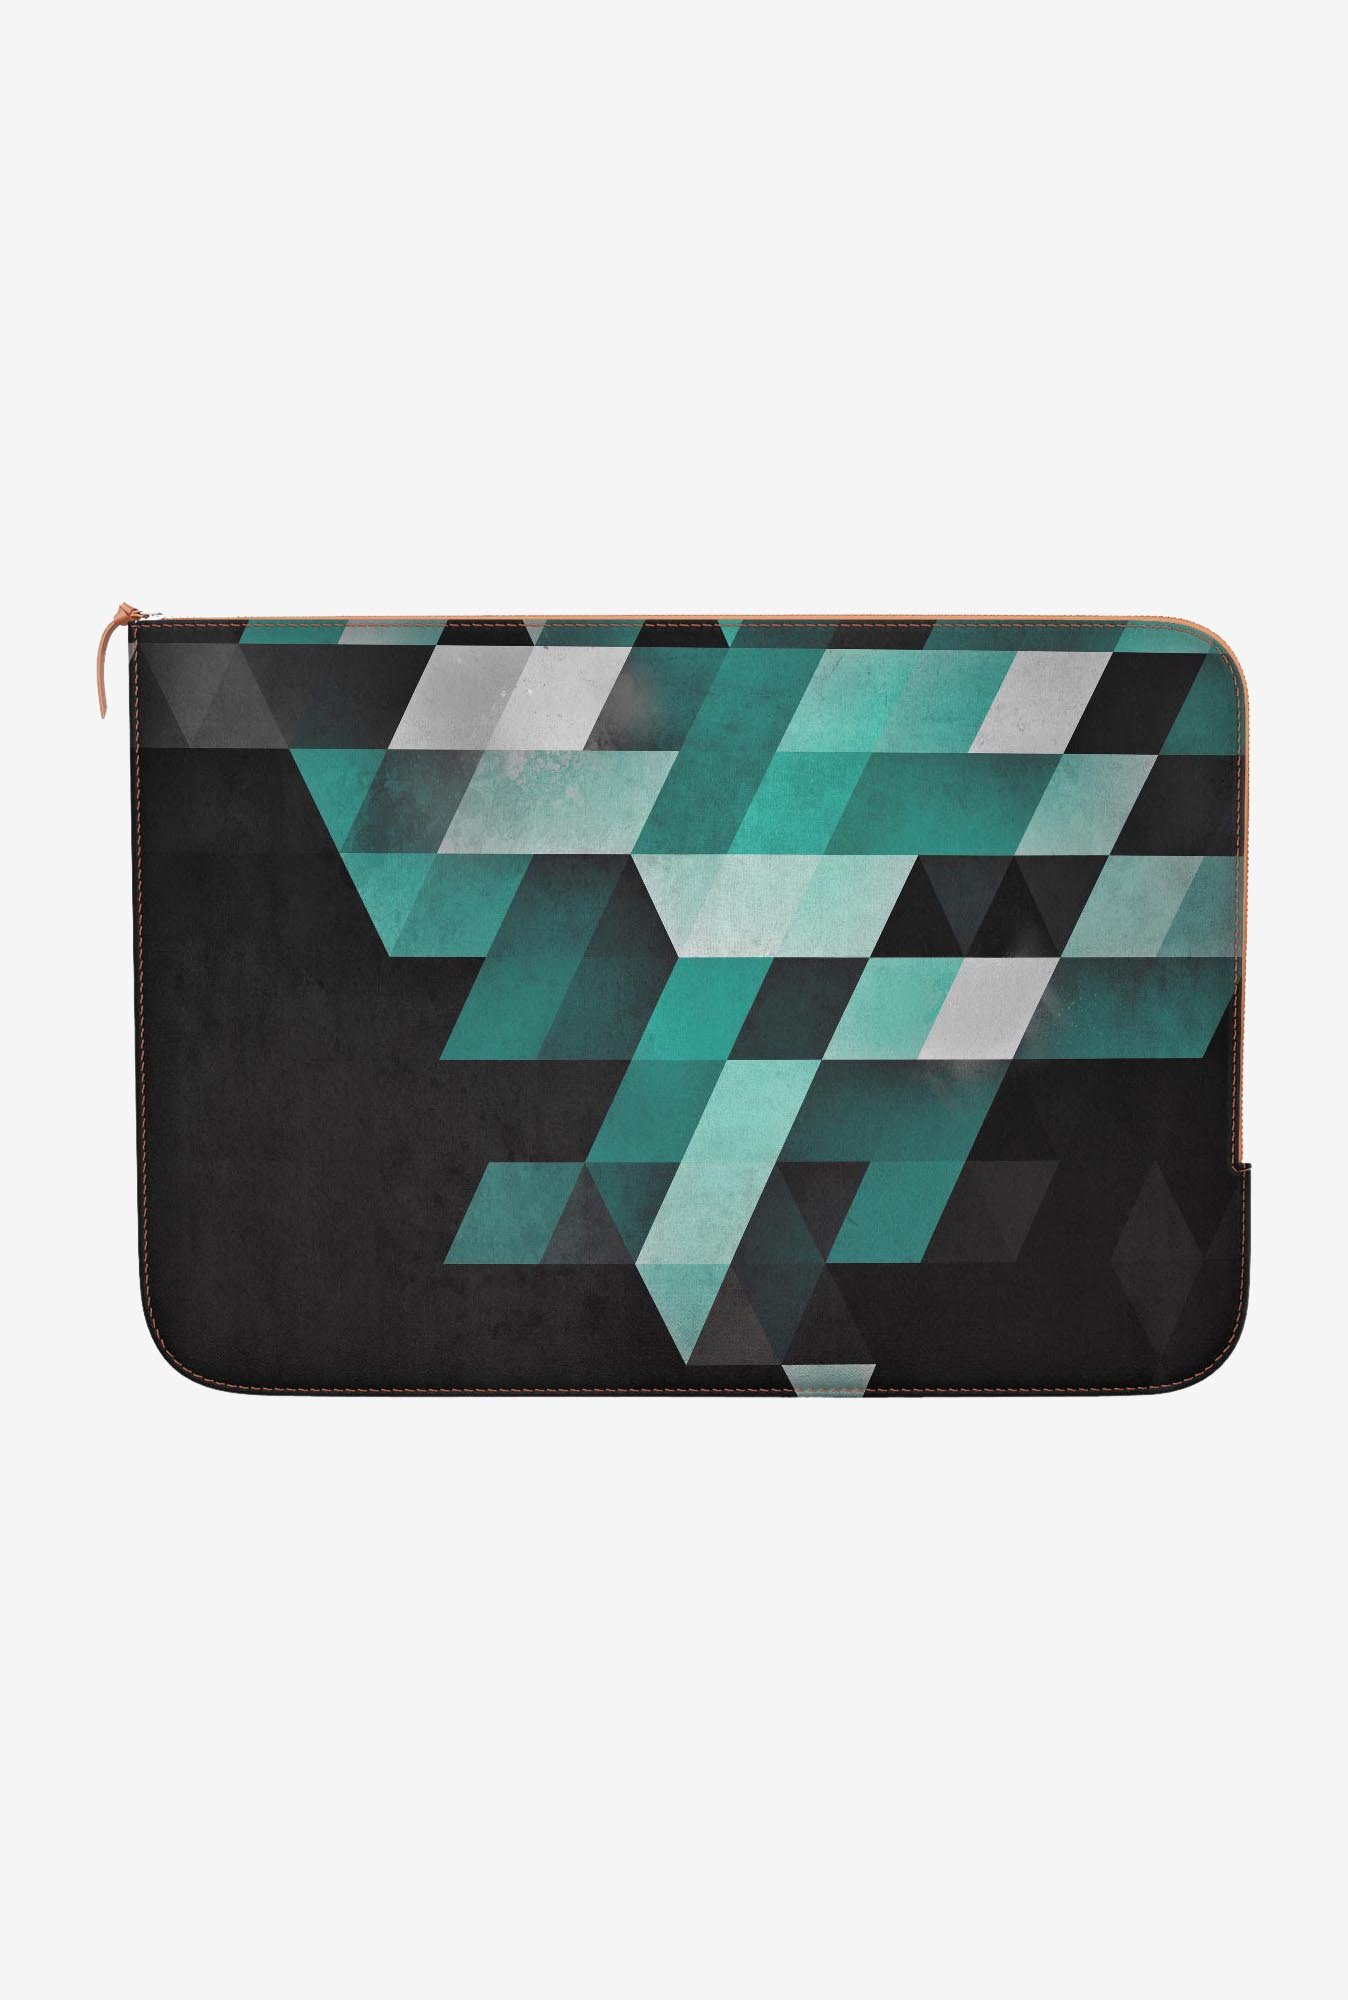 DailyObjects Dryma Mynt Hrxtl Macbook Pro 13 Zippered Sleeve